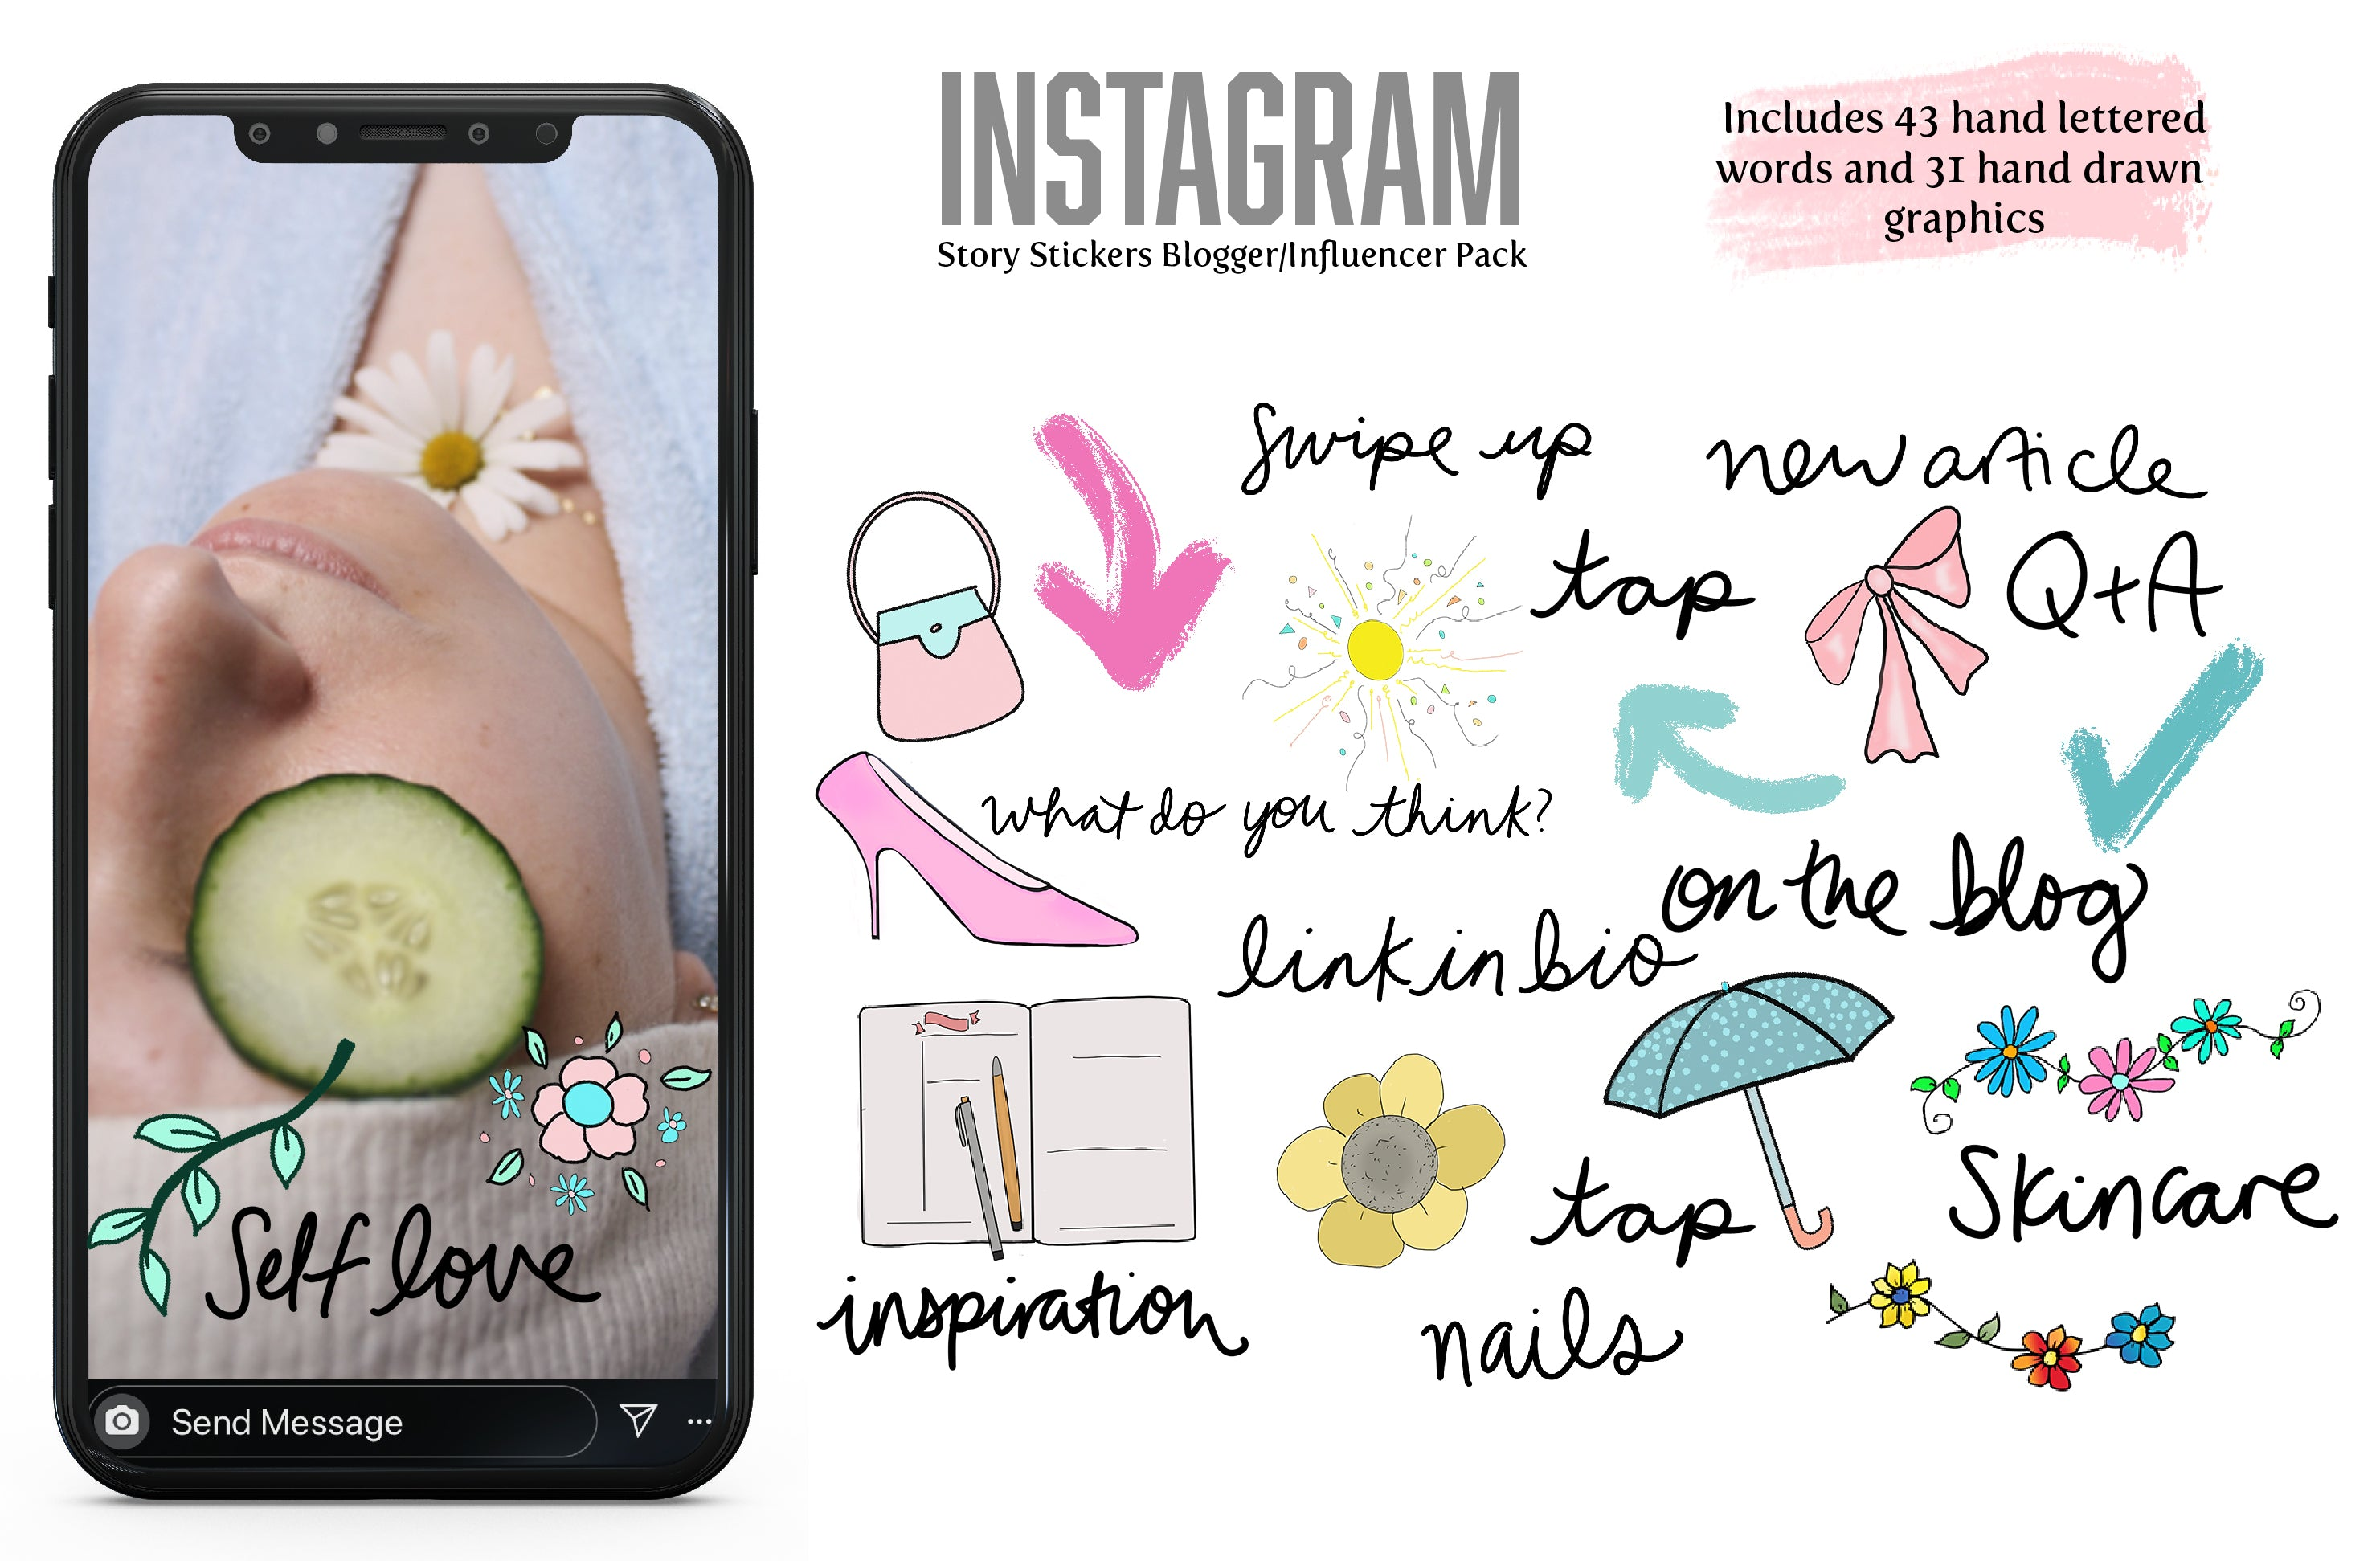 Digital Stickers: Blogger/Influencer Pack for Instagram Stories and Goodnotes-Roam Wild Designs